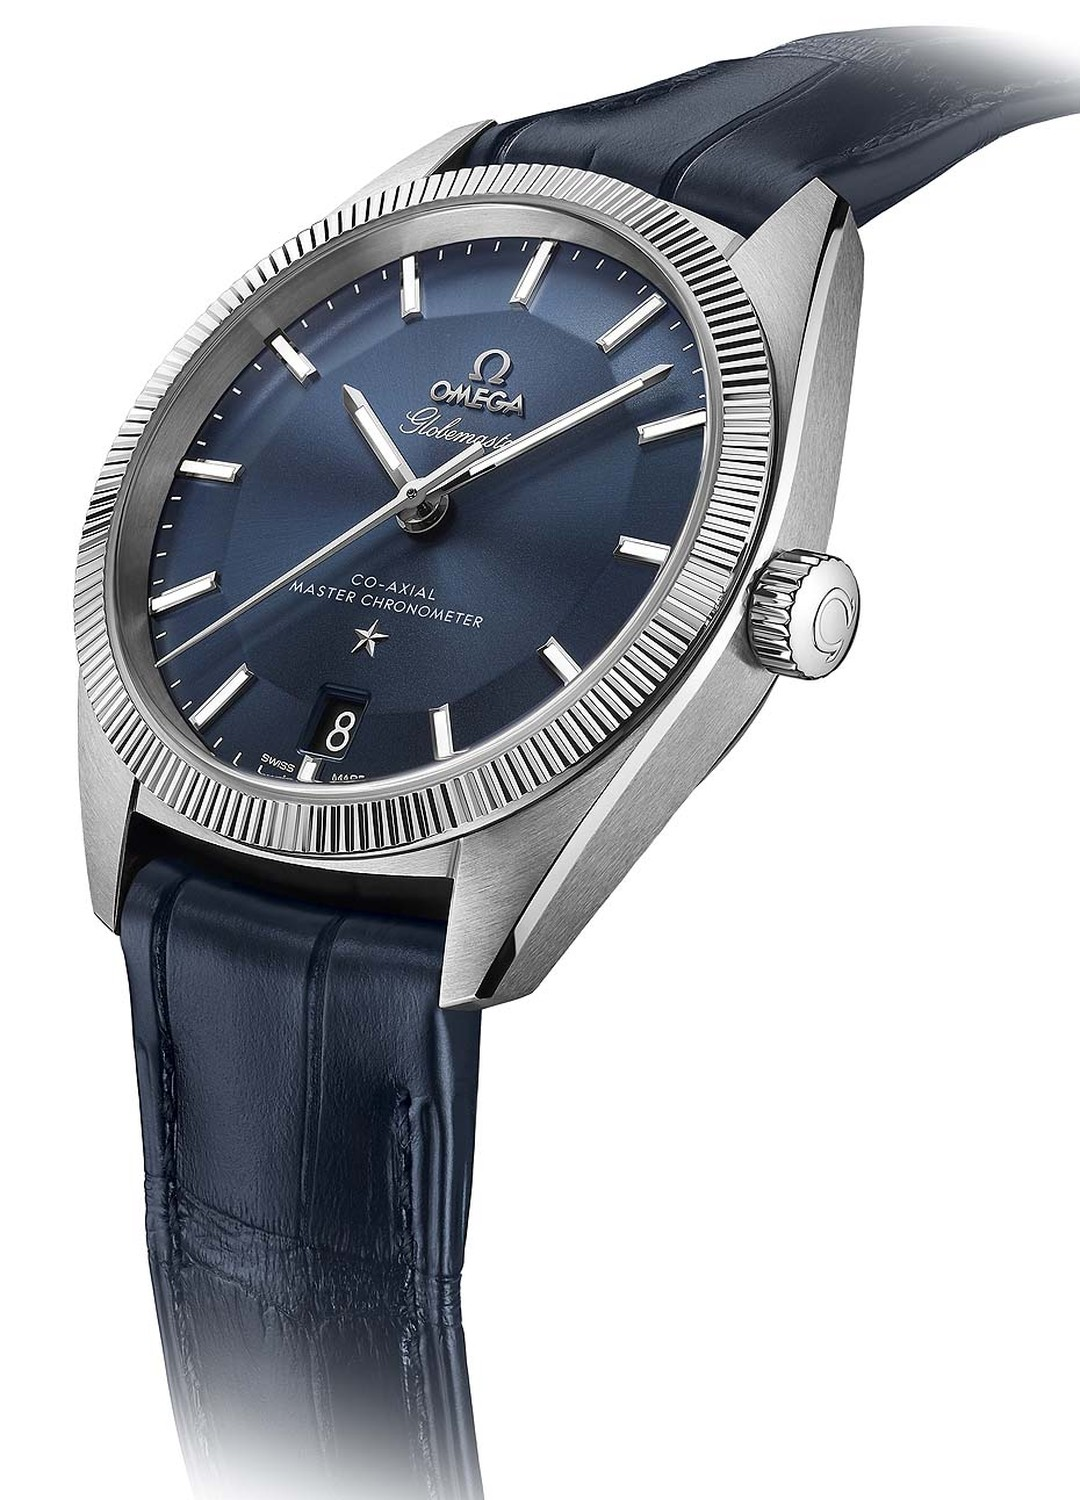 Omega Globemaster is the beneficiary of the Swiss giant's latest technology and has earned the title of Master Chronometer. A new watch certification - known as META - takes testing beyond the standard COSC chronometer tests, and subjects the watch to mag